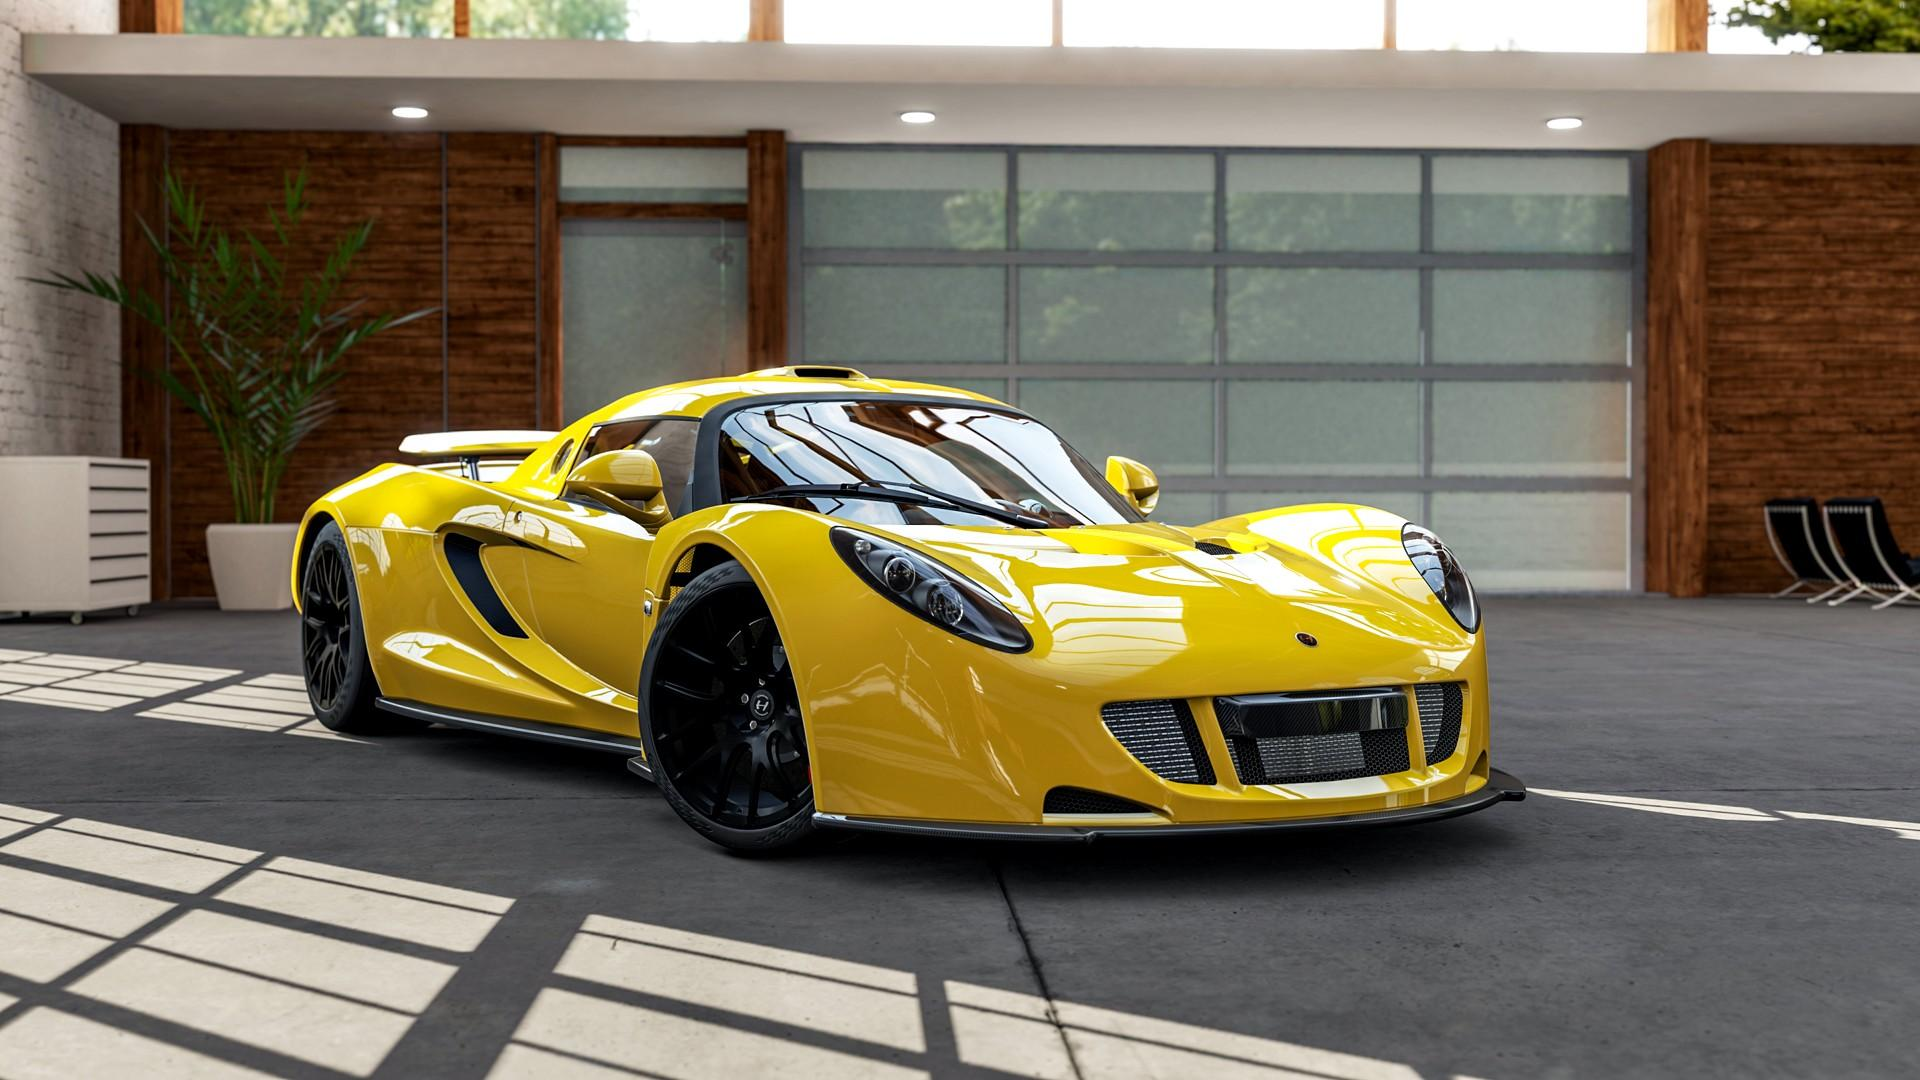 Venom Gt Price >> Hennessey Venom Gt Wallpaper HD Download